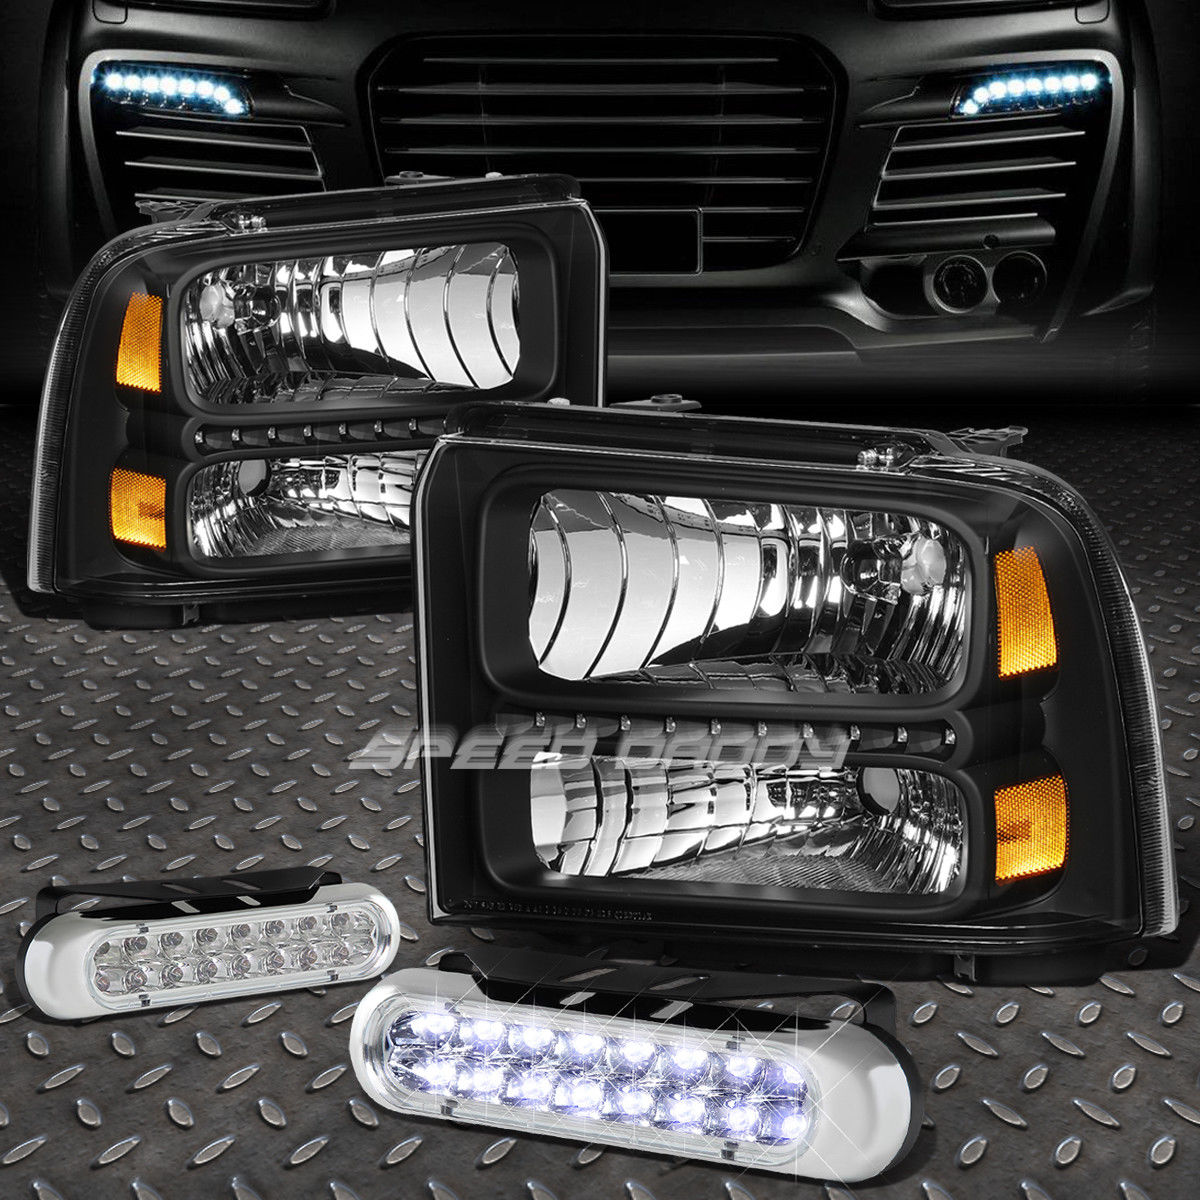 フォグライト BLACK HOUSING LED HEADLIGHT+16 LED GRILL FOG LIGHT FOR 05-07 F250/F350/F450 BLACK HOUSING LEDヘッドライト+ 05-07 F250 / F350 / F450用16 LEDグリルフォグライト